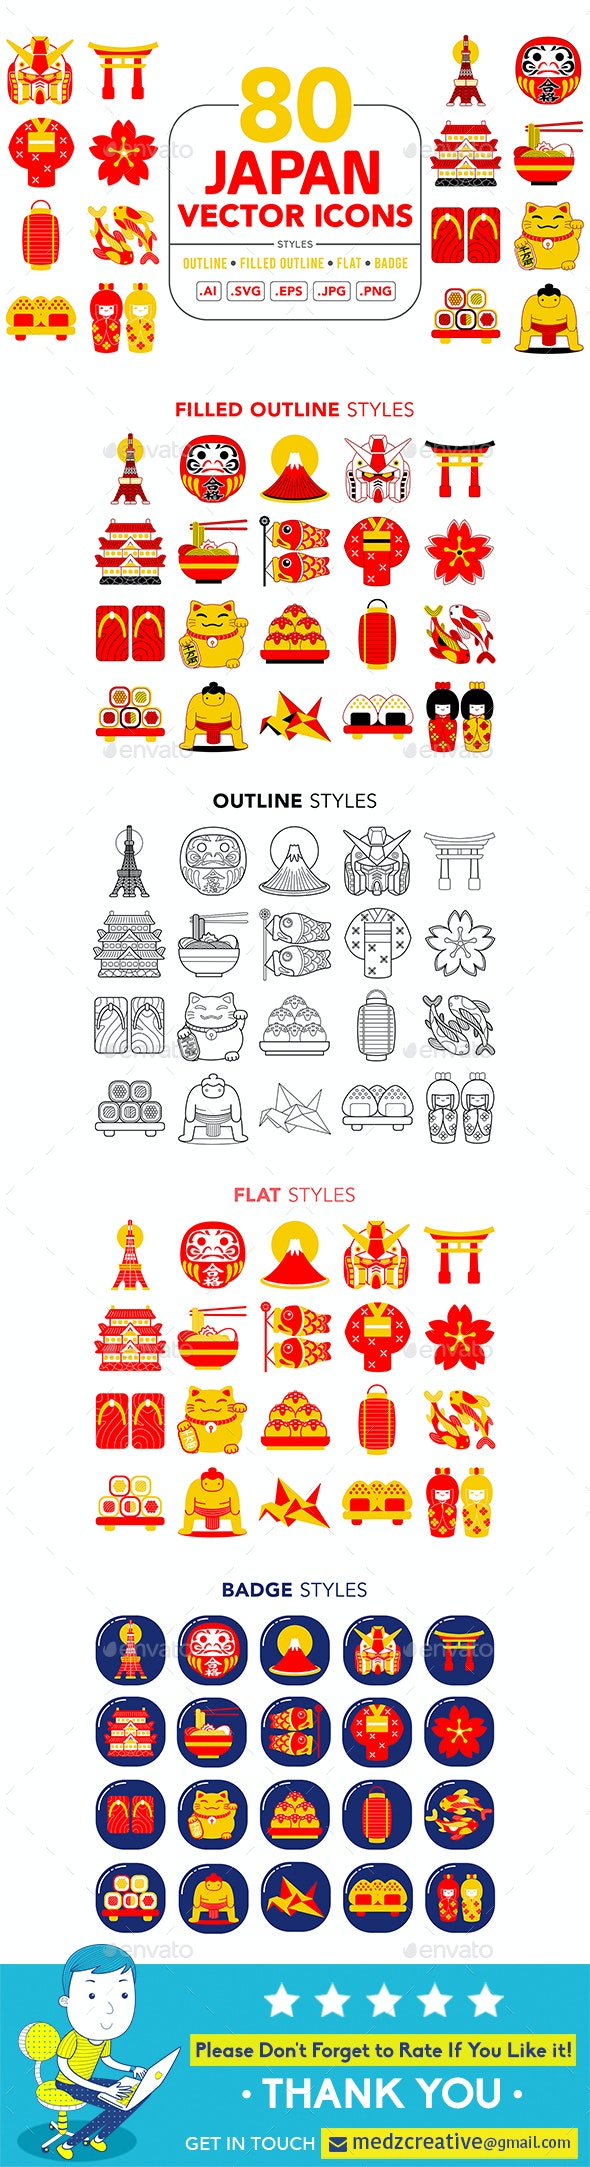 Japan Vector Icons - Objects Icons